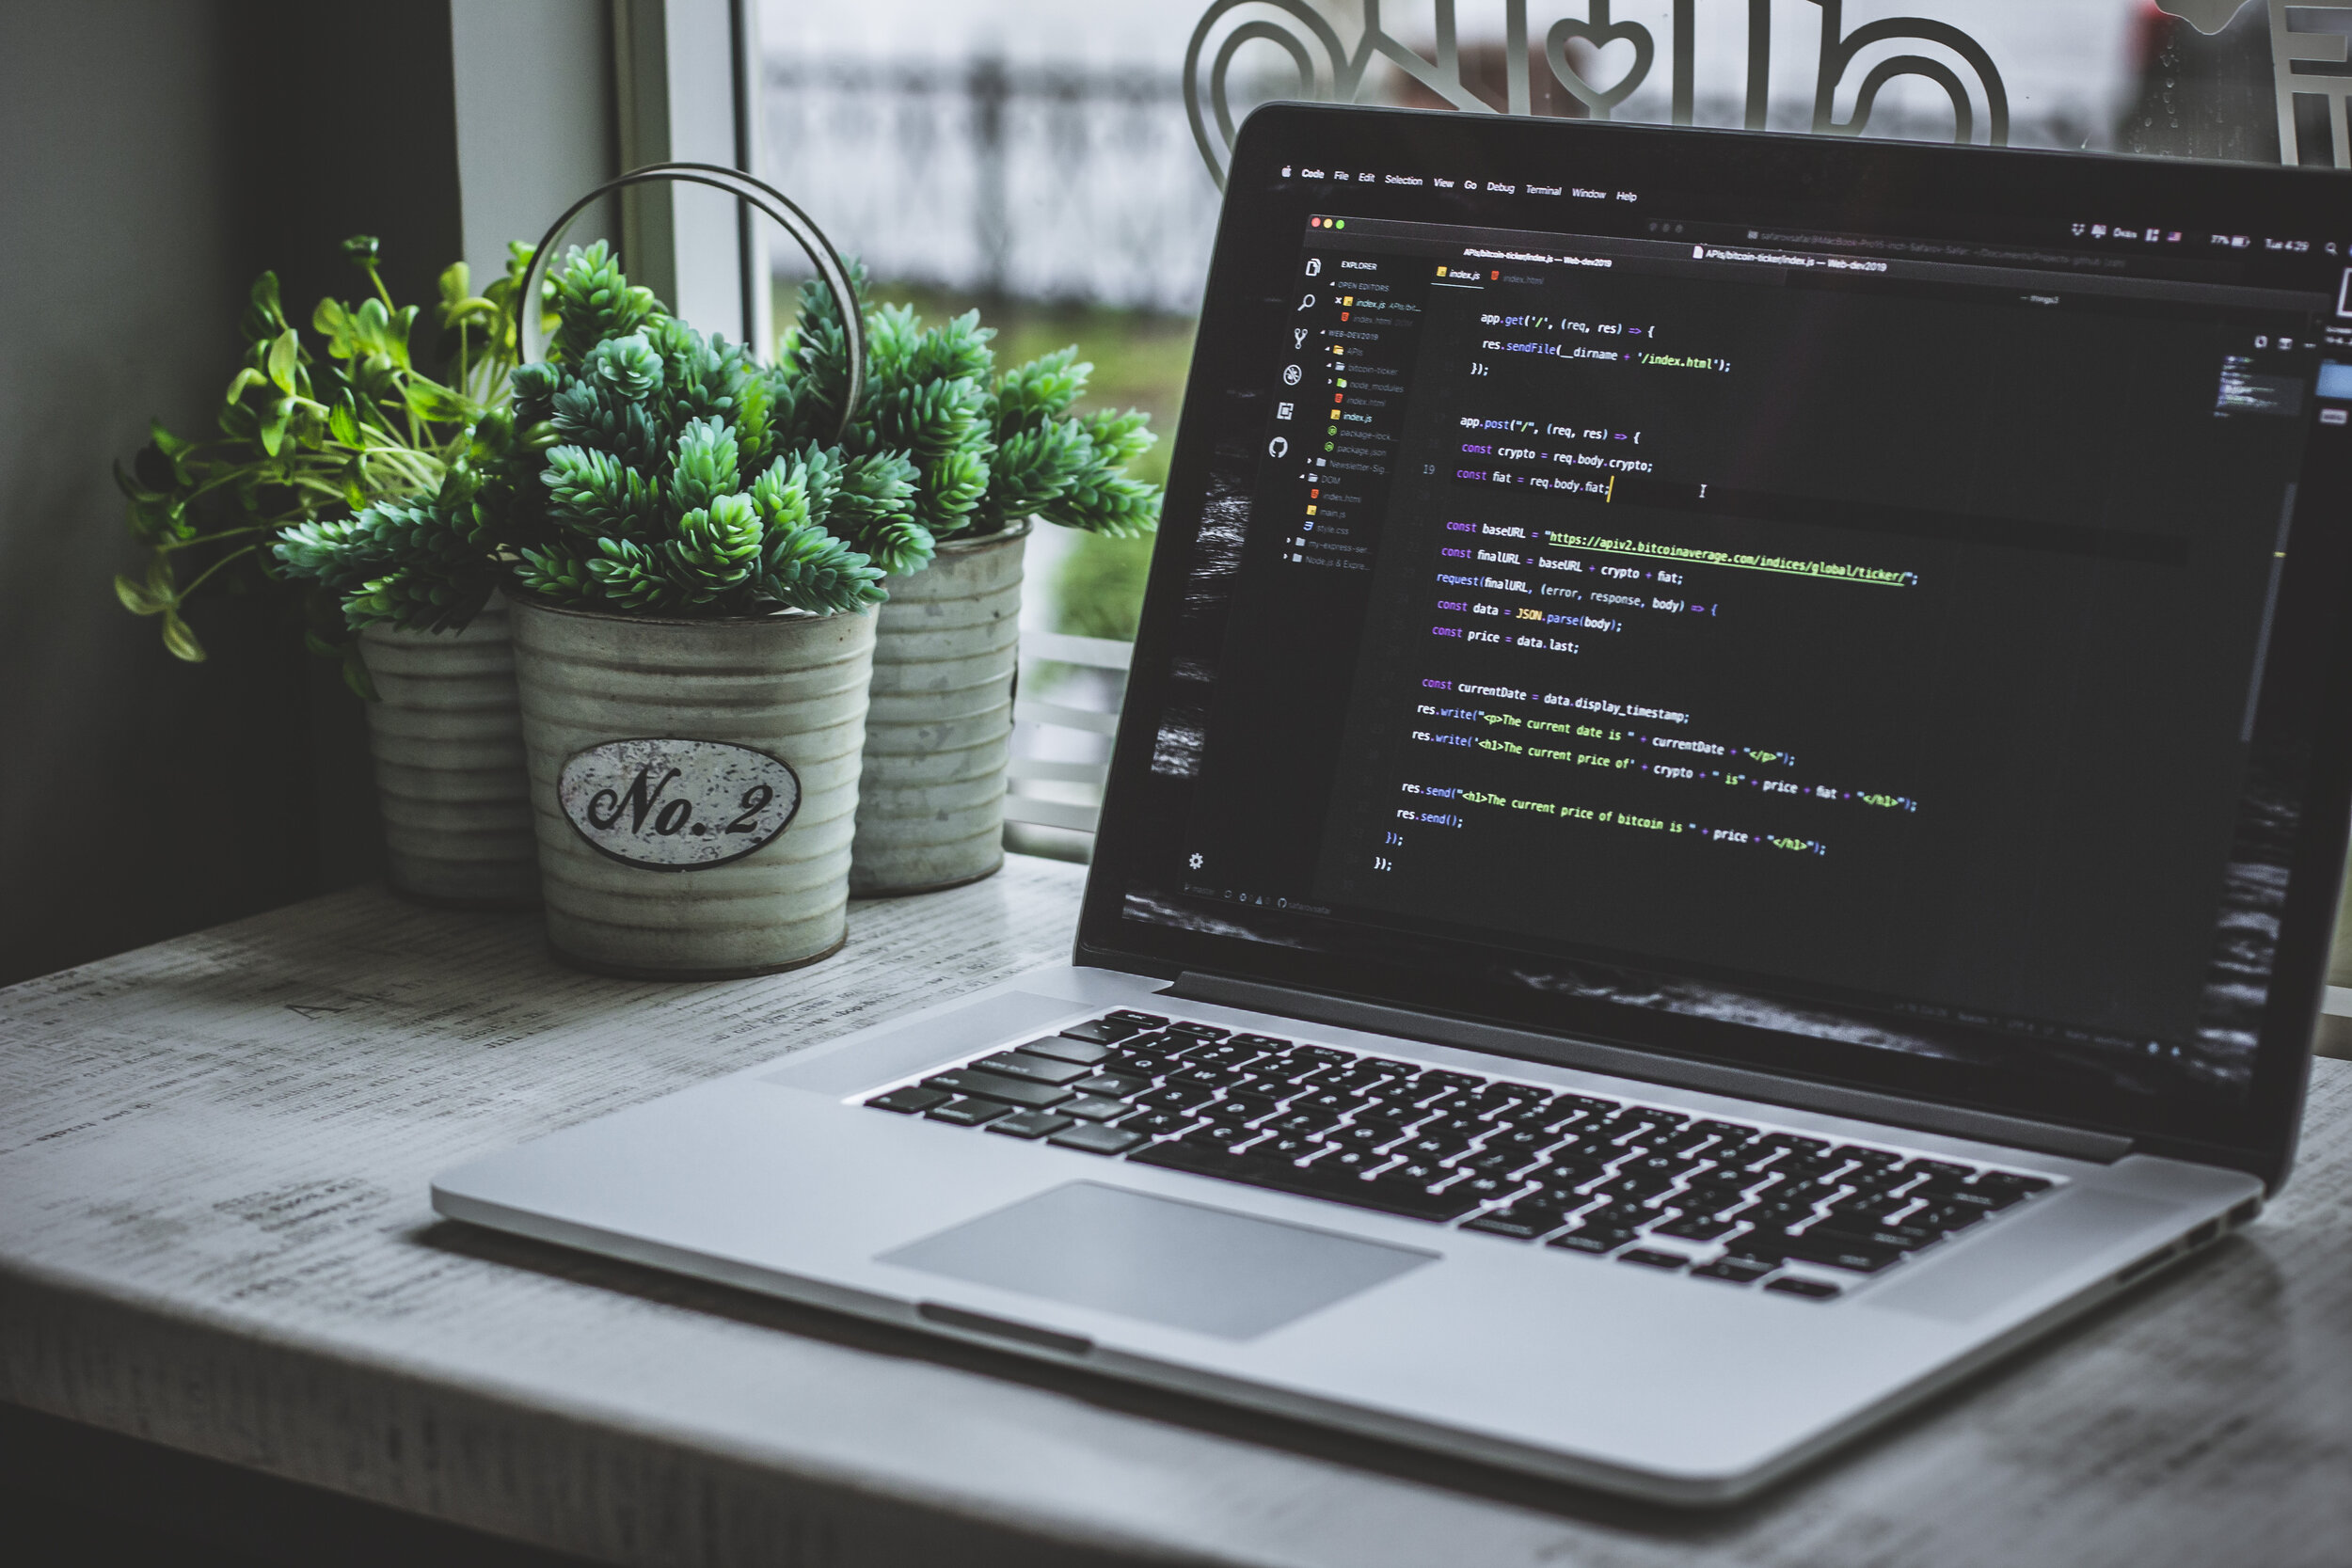 You can become an expert programmer and never write or run a single line of code!